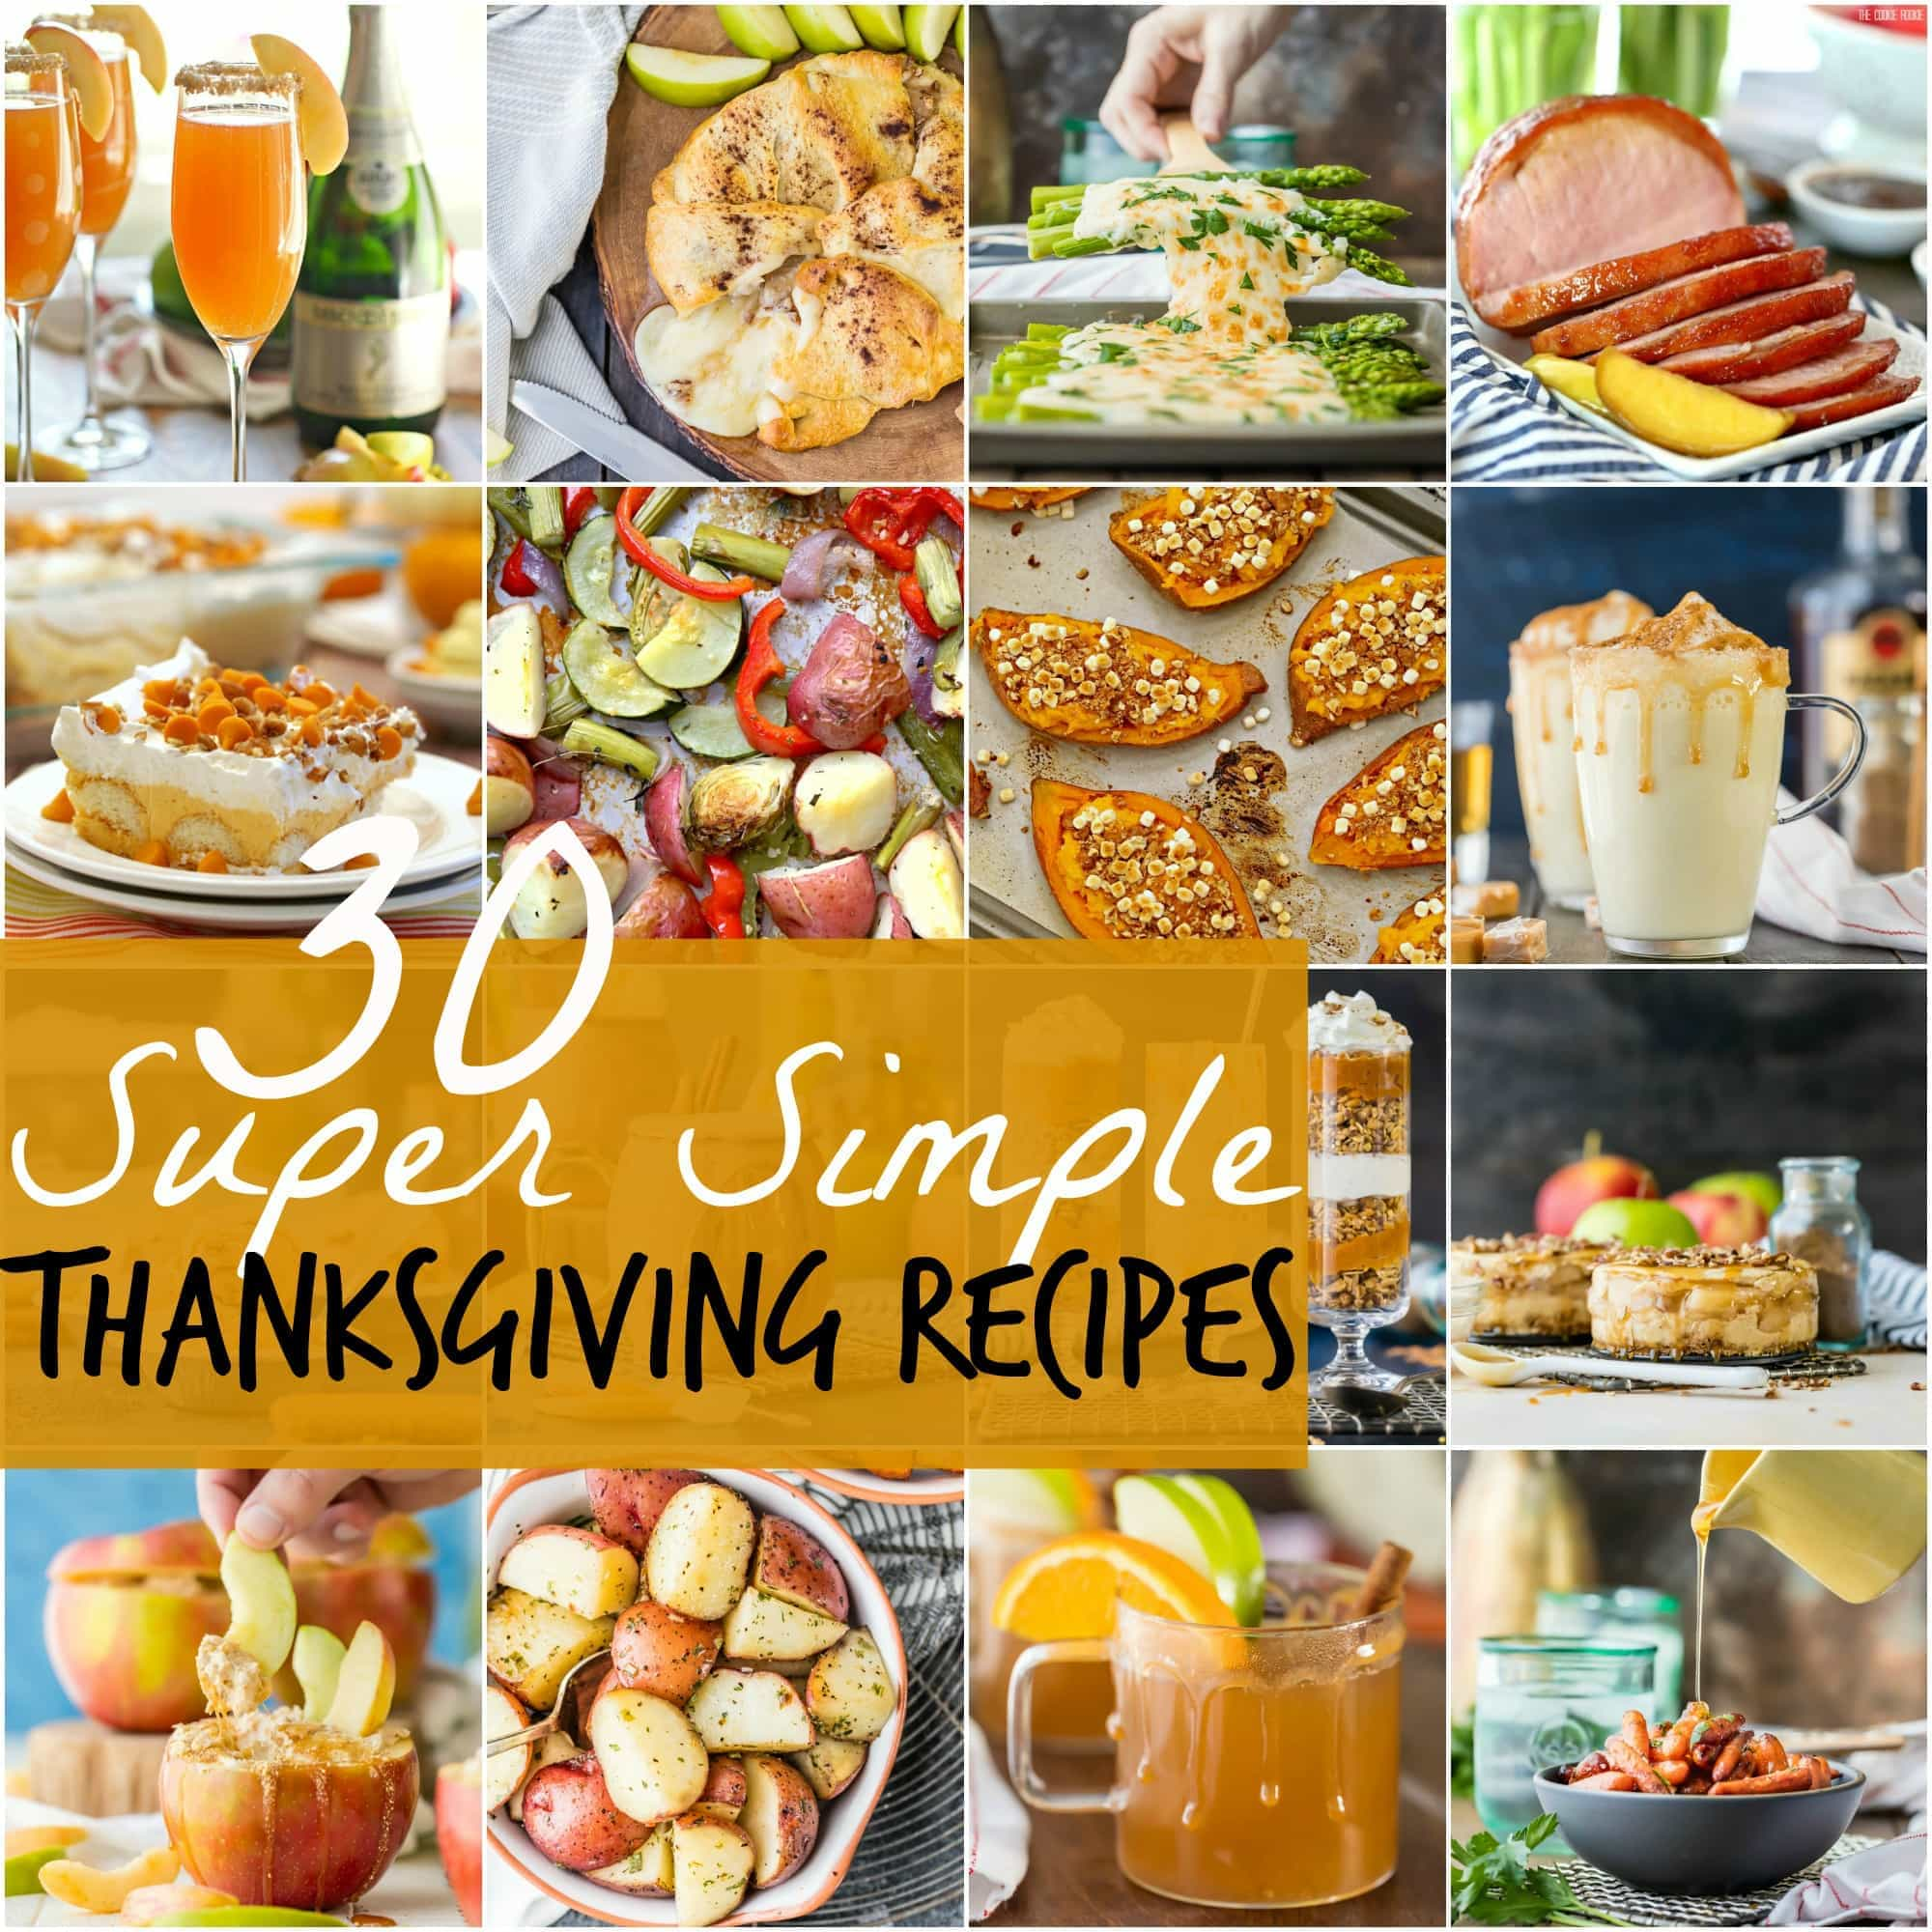 Thought On Thanksgiving >> 30 SUPER SIMPLE Thanksgiving Recipes